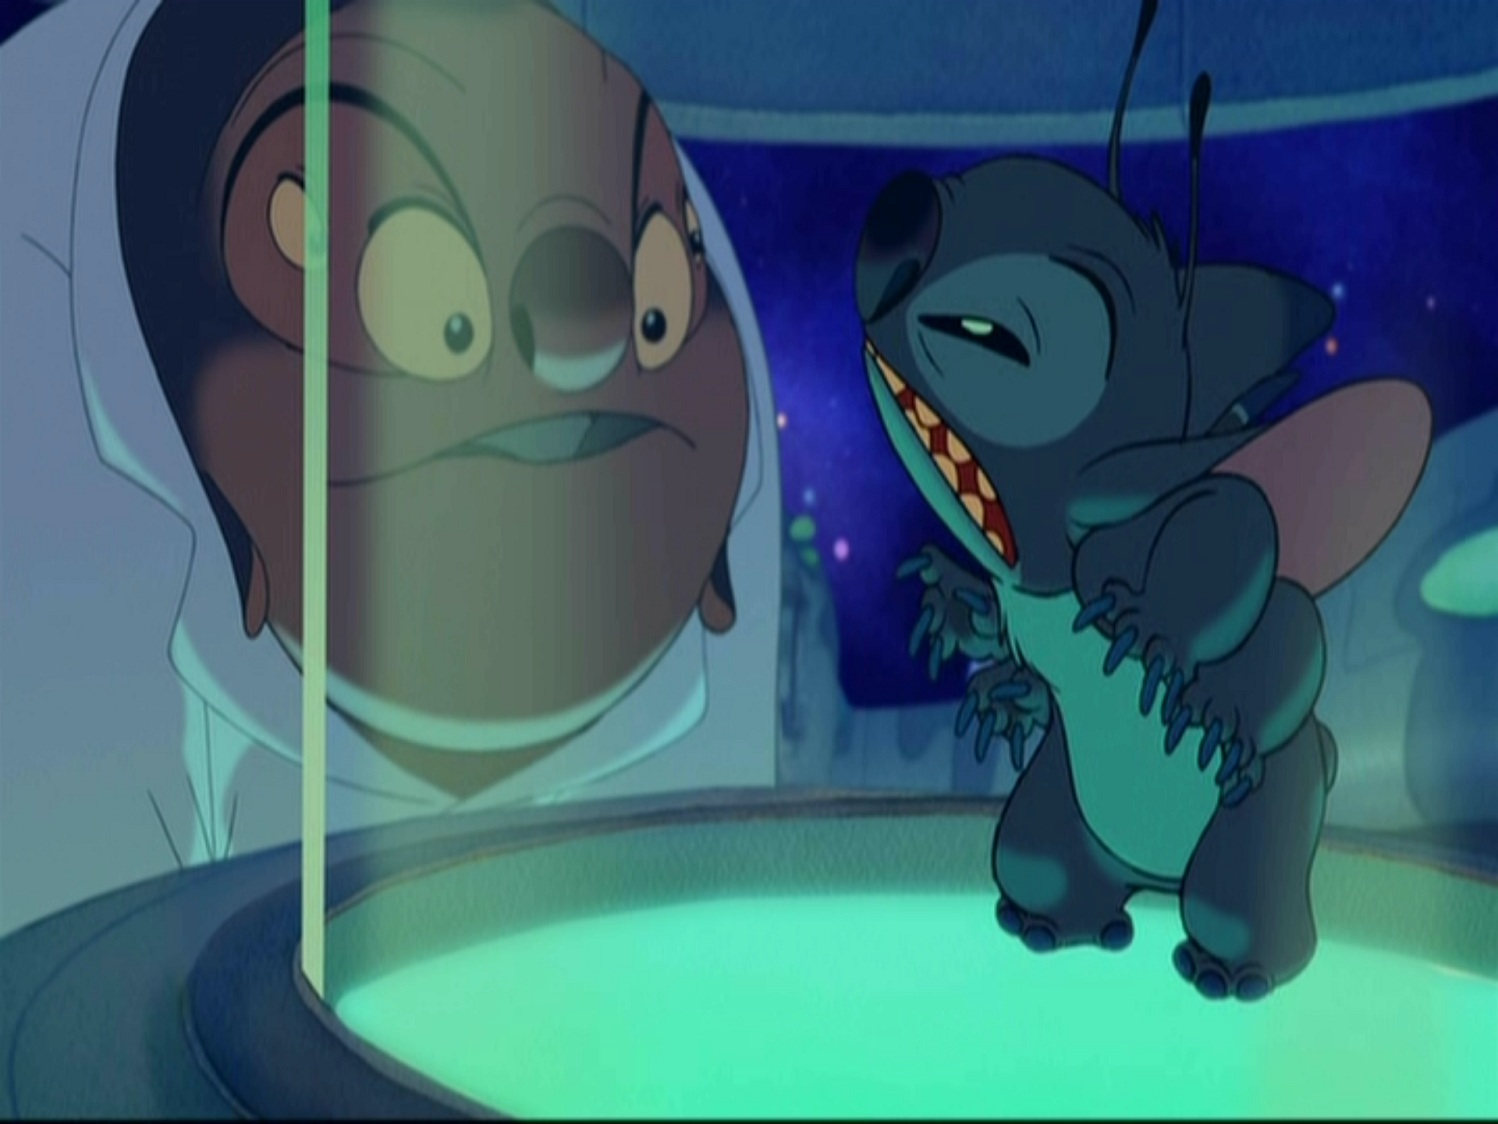 what is the relationship between stitch and kelly on